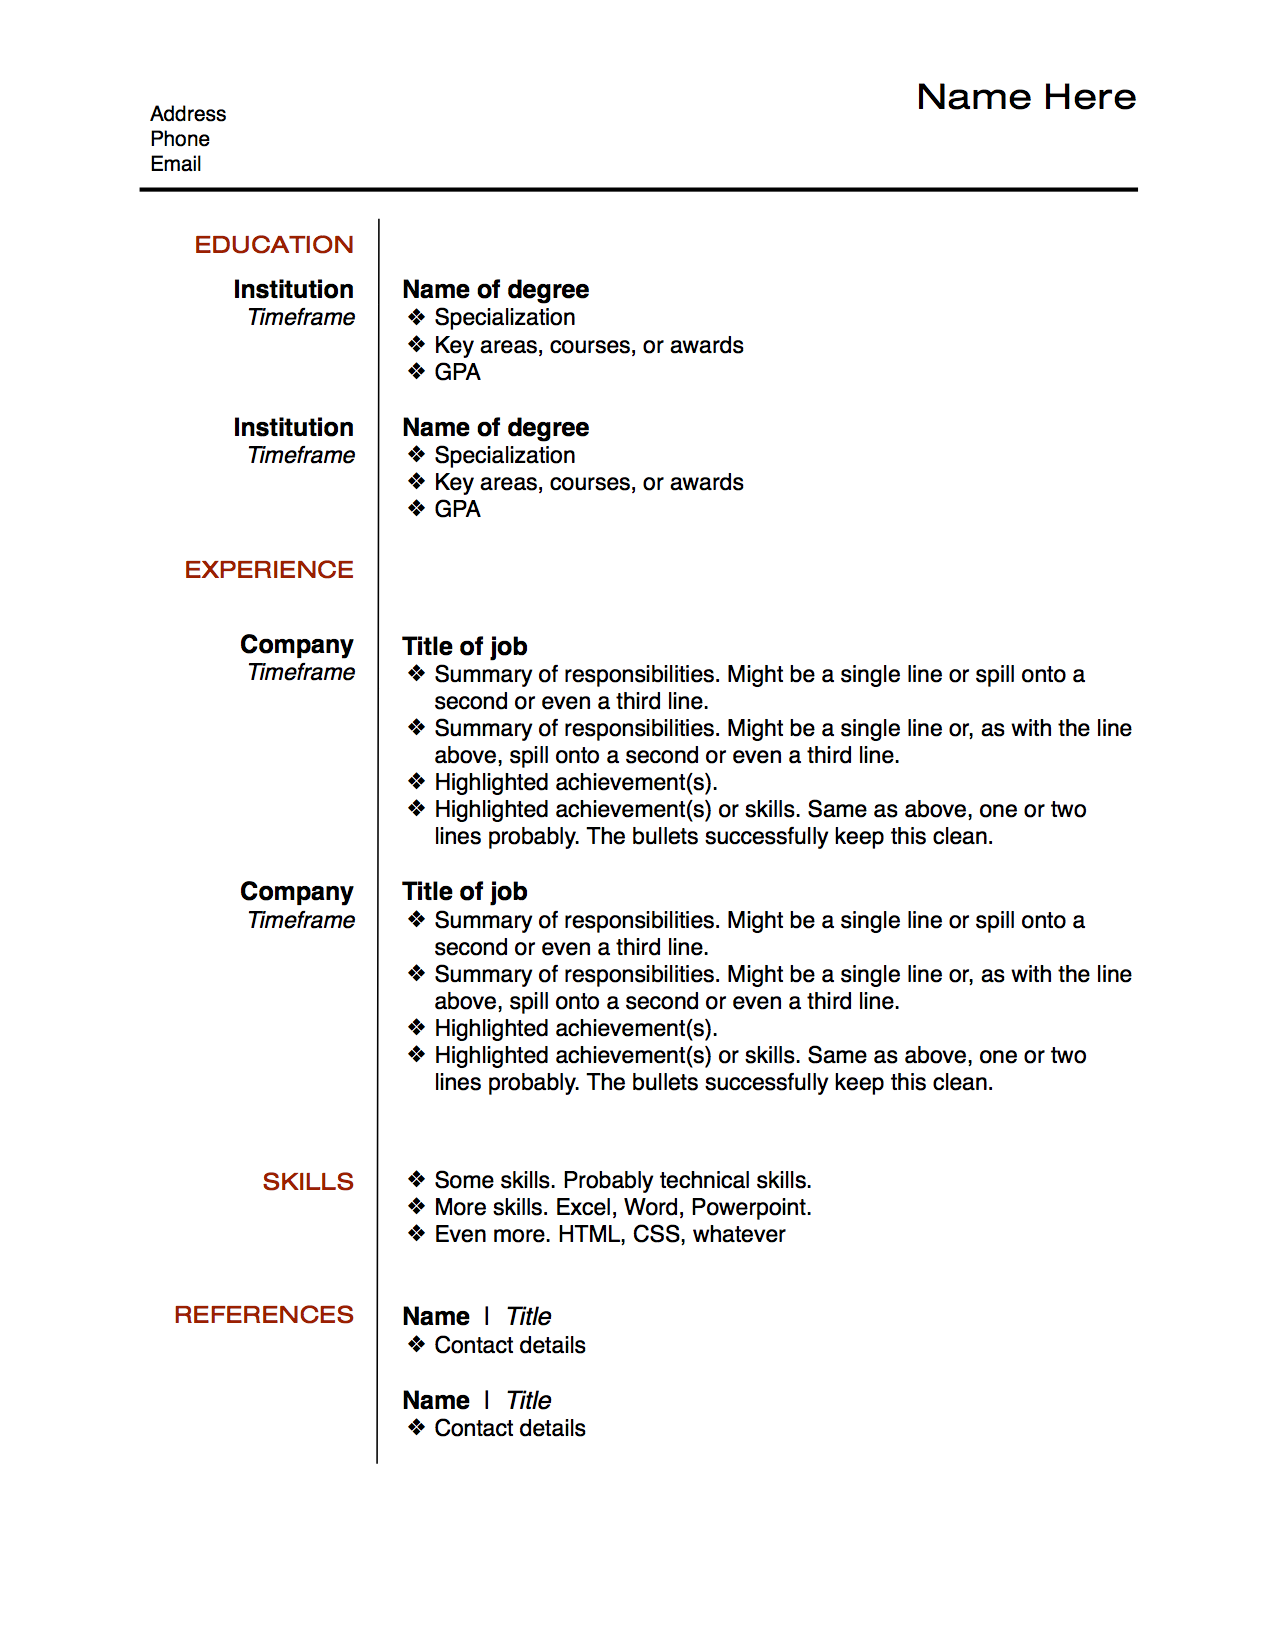 resume layout example.png